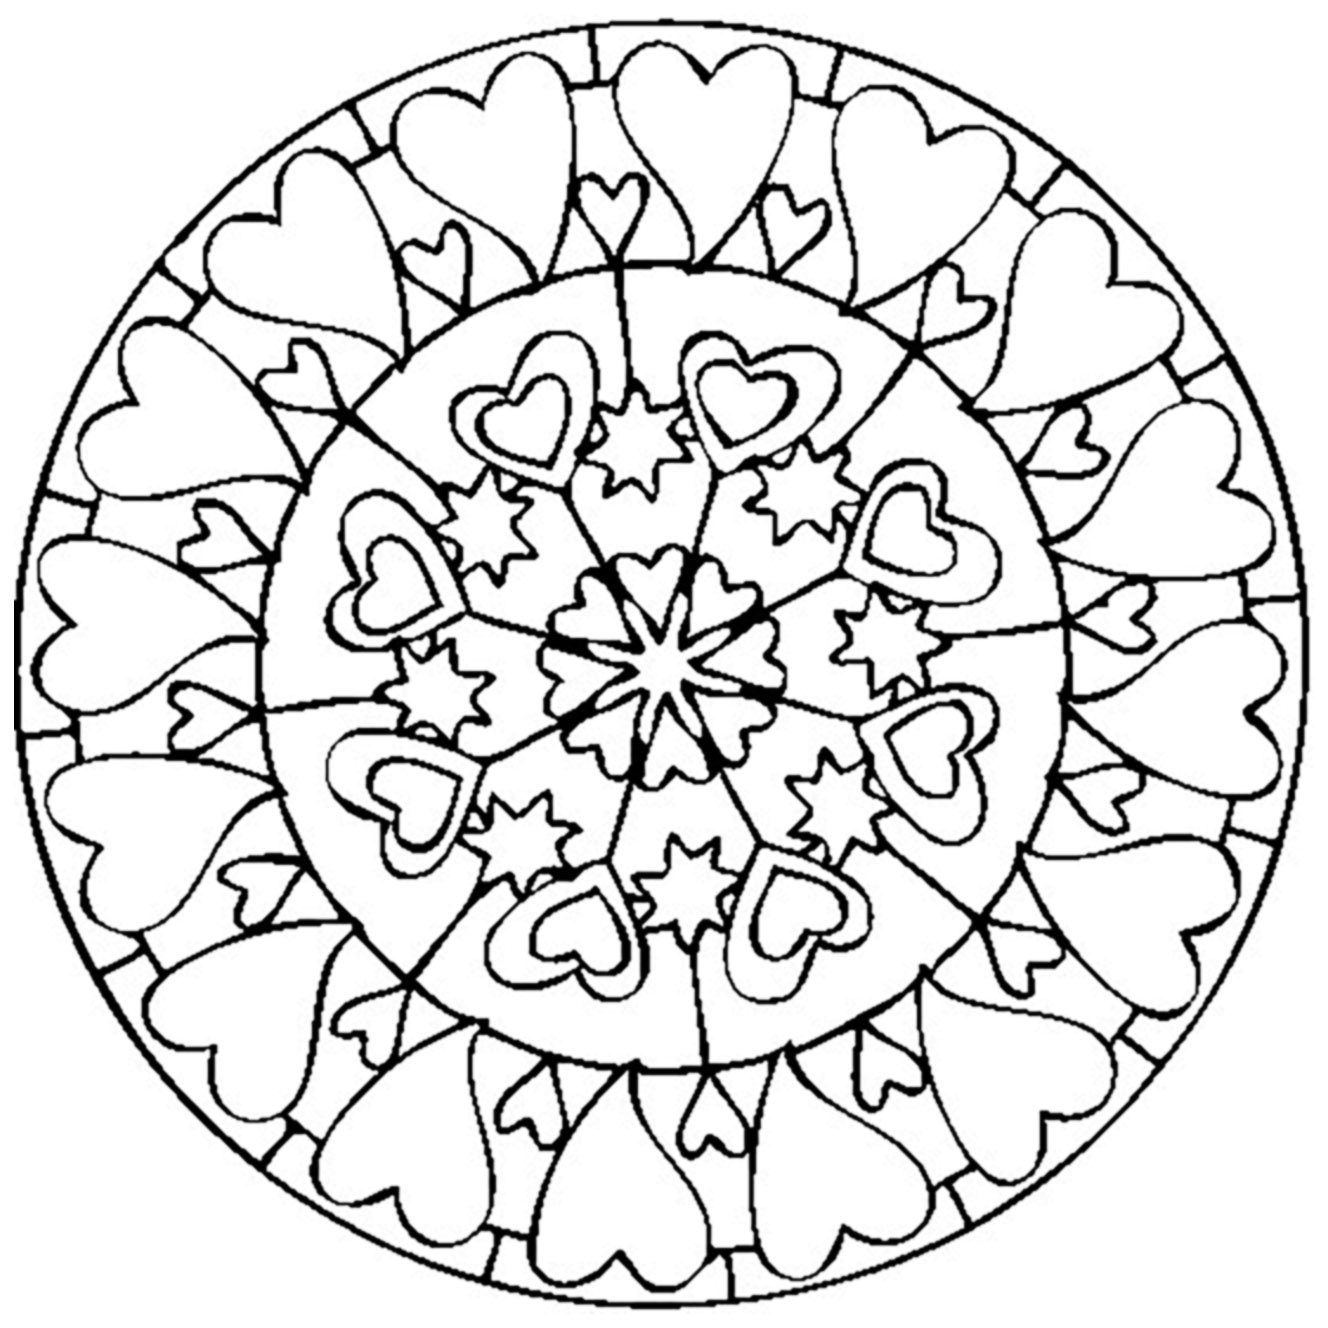 - Mandala Coloring Page With Hearts - Easy Mandalas For Kids - 100